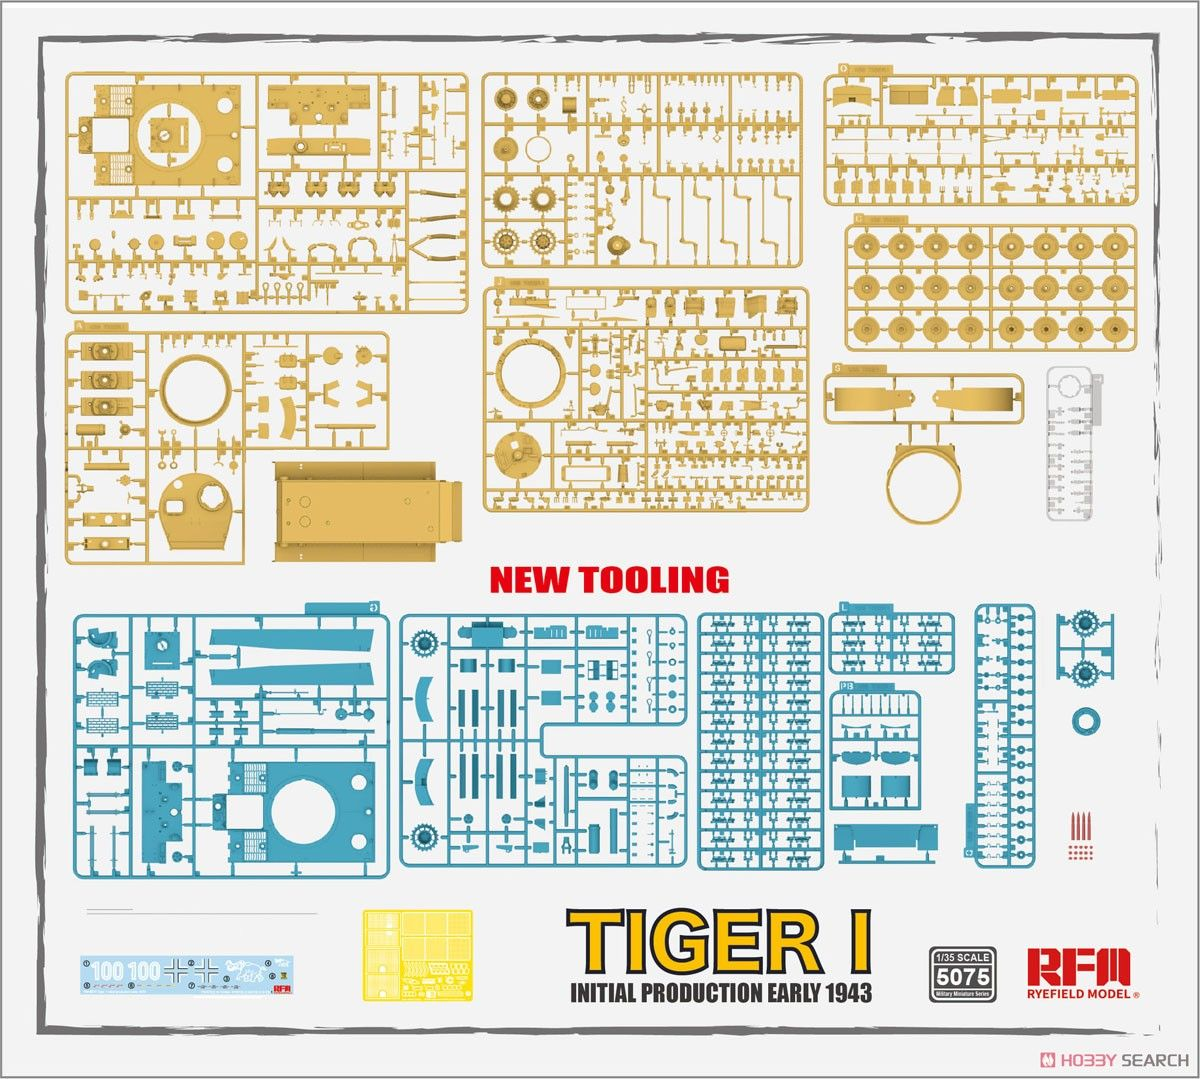 Rye Field Model 5075 Tiger I 100# Initial Production Early 1943